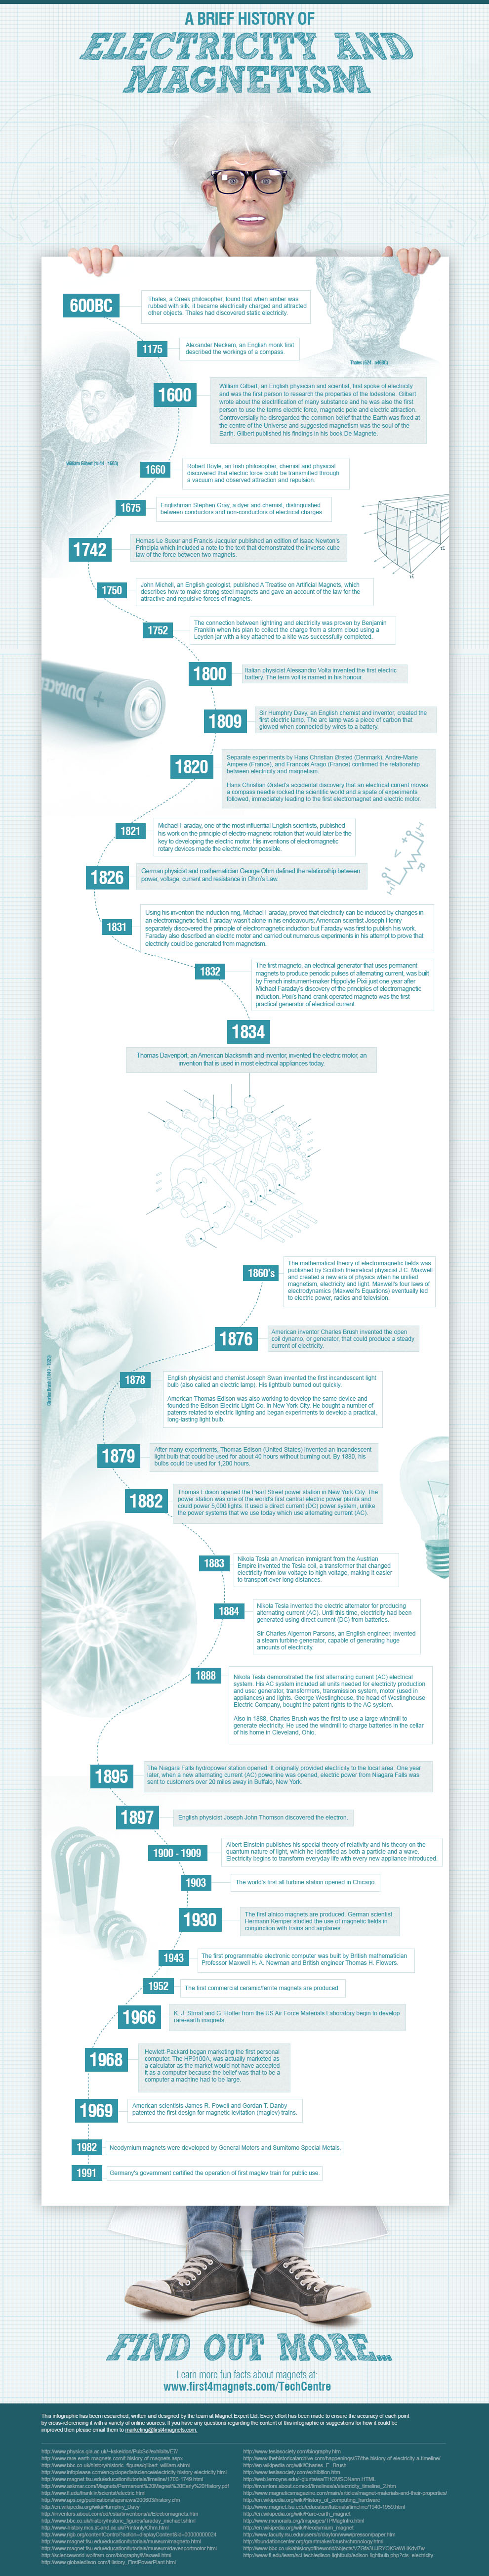 A Brief History Of Electricity & Magnetism InfoGraphic